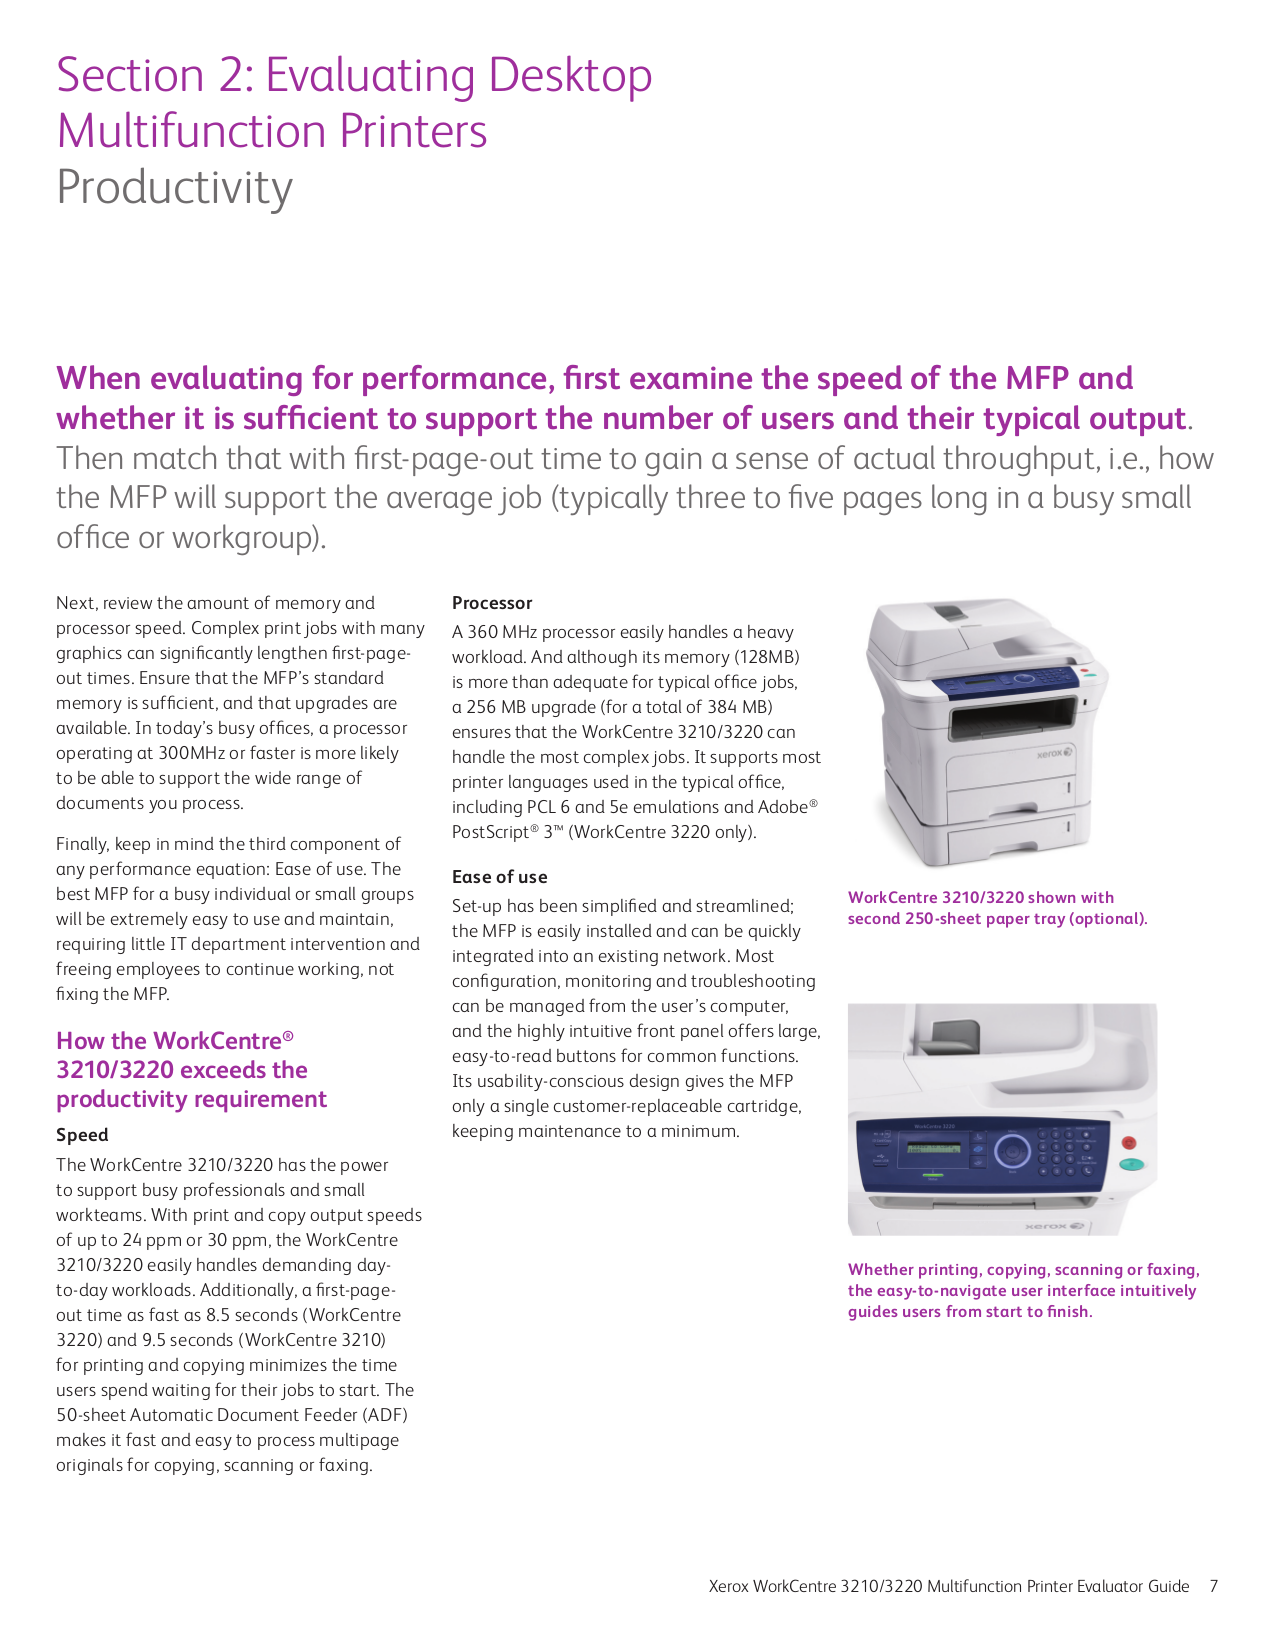 PDF manual for Xerox Multifunction Printer WorkCentre 3210